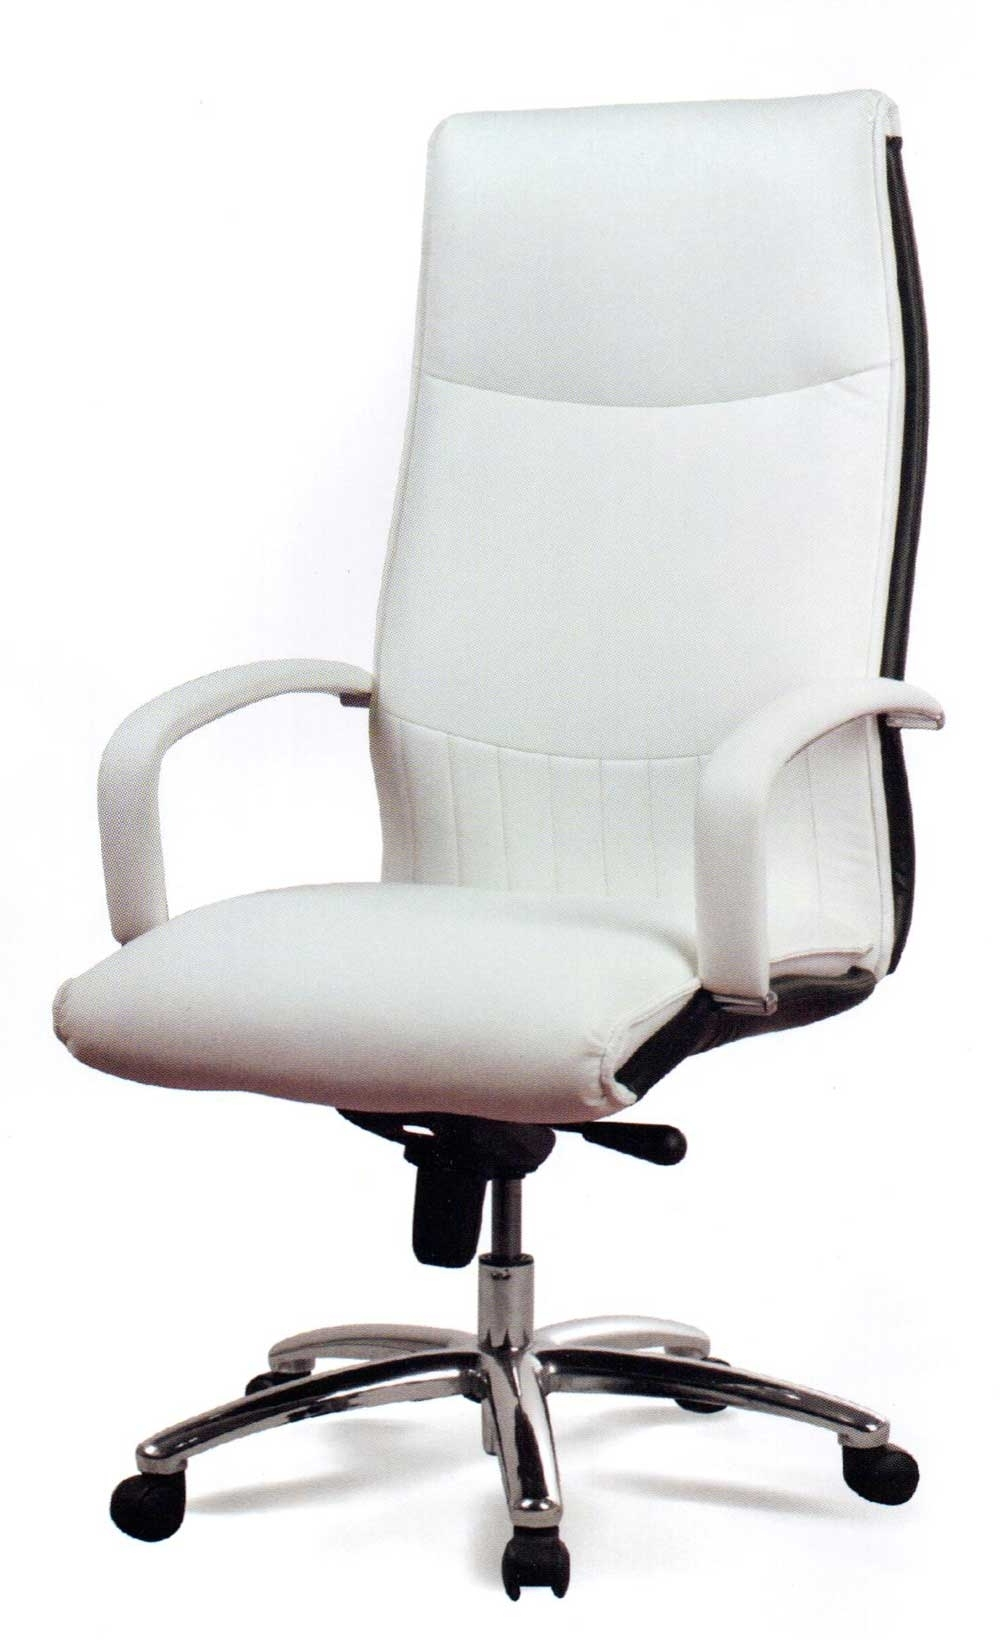 Popular Wood And Leather Executive Office Chairs With Regard To Wood Leather Office Chairs (View 11 of 20)